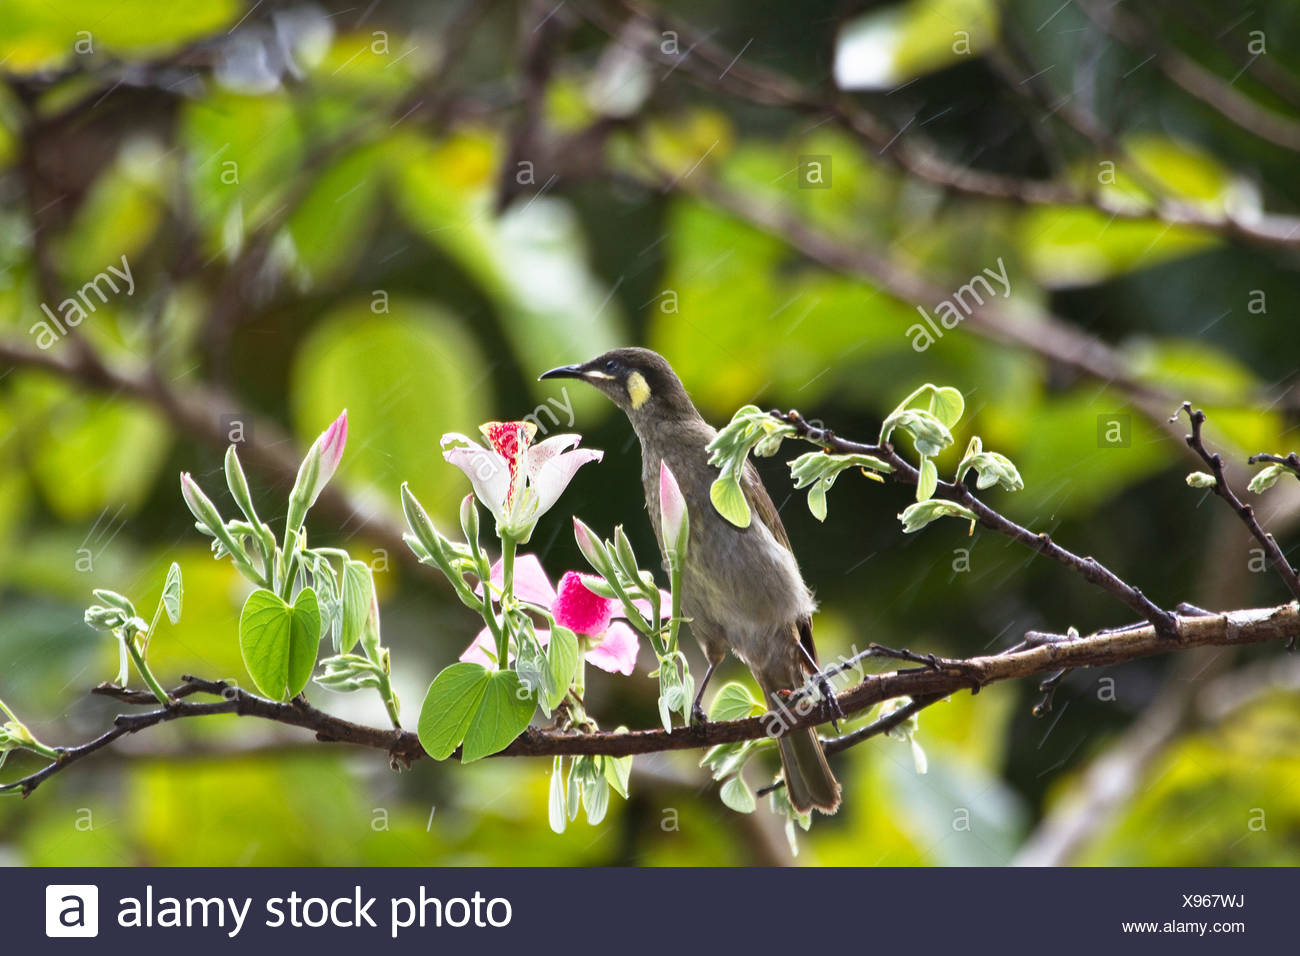 lesser lewin honeyeater (Meliphaga notata), sitting on a blooming branch, Australia, Queensland, Daintree National Park - Stock Image